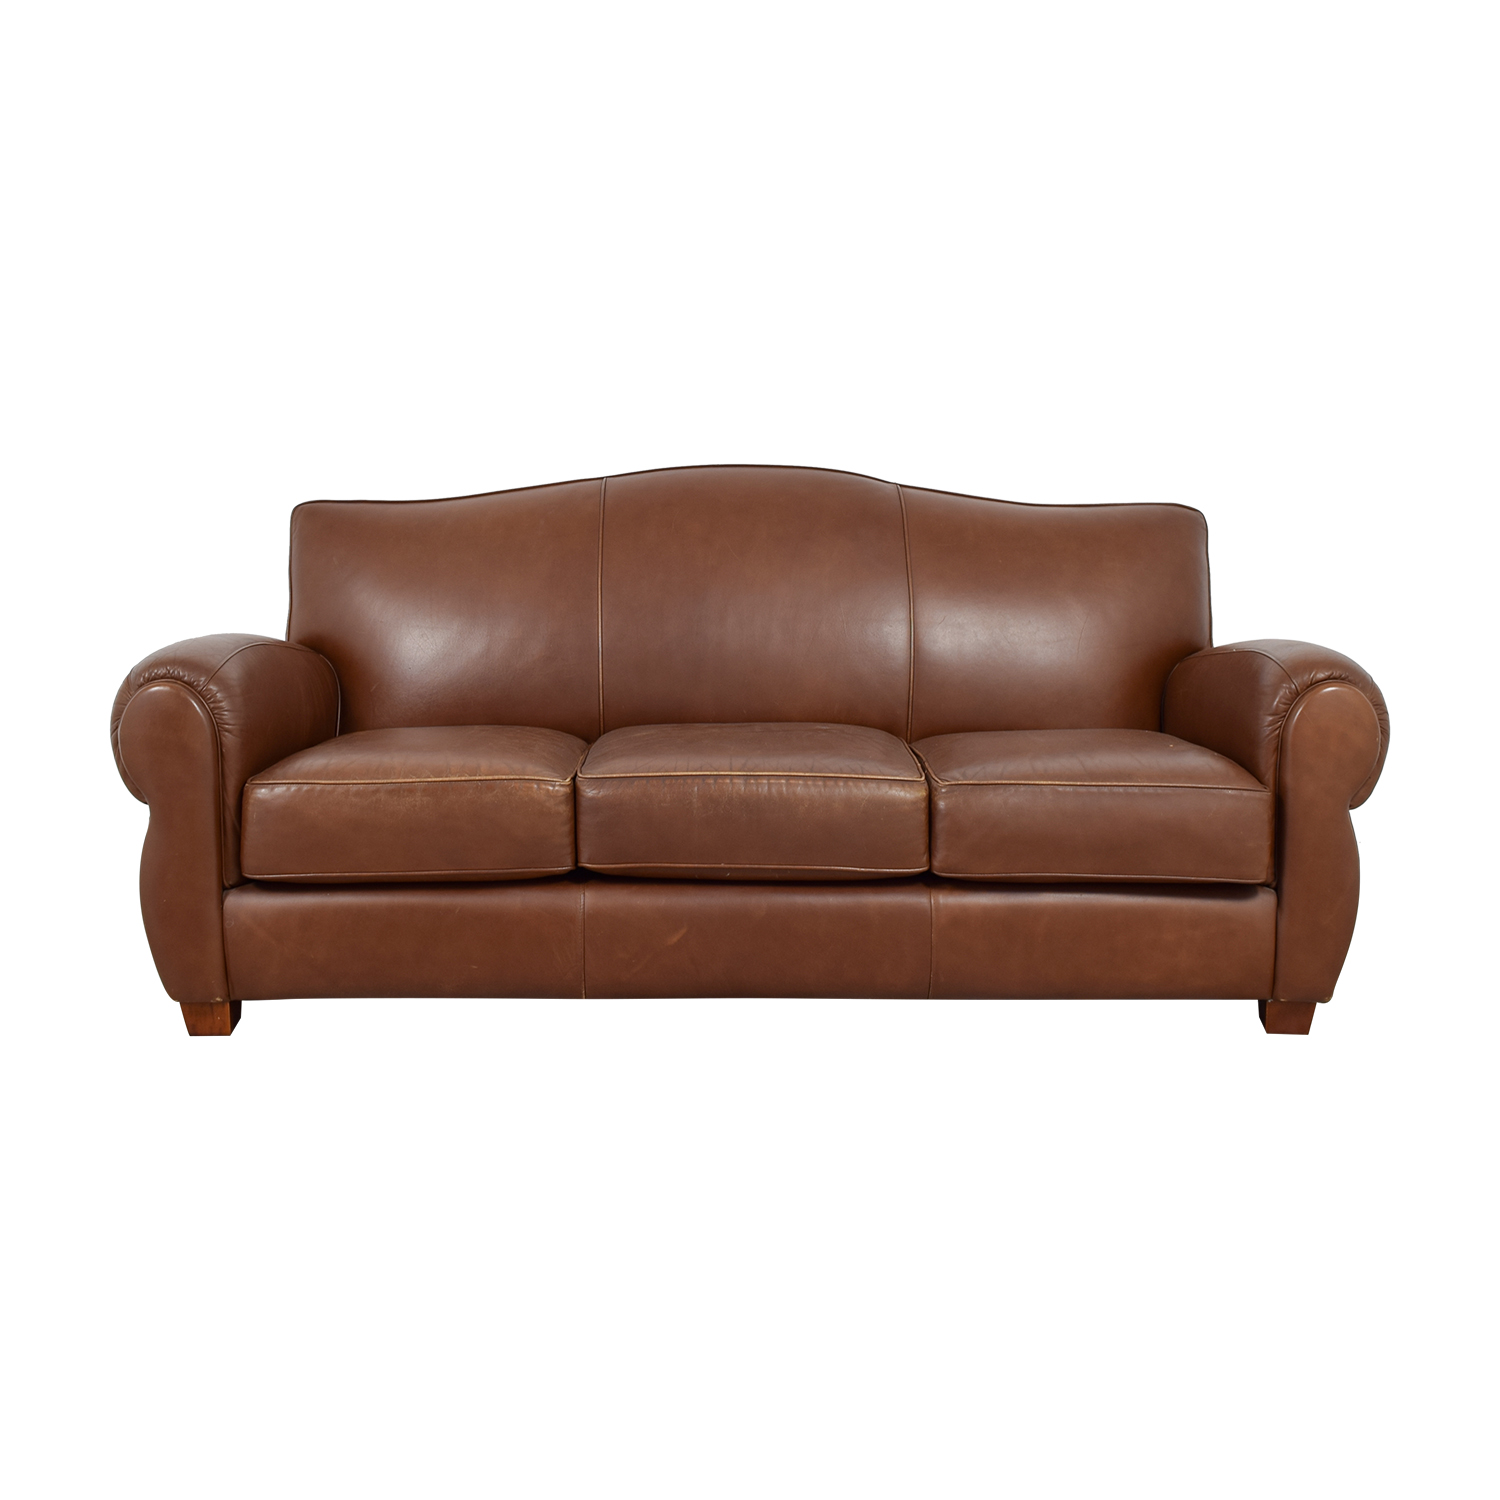 shop Thomasville Brown Leather Three-Cushion Sofa Thomasville